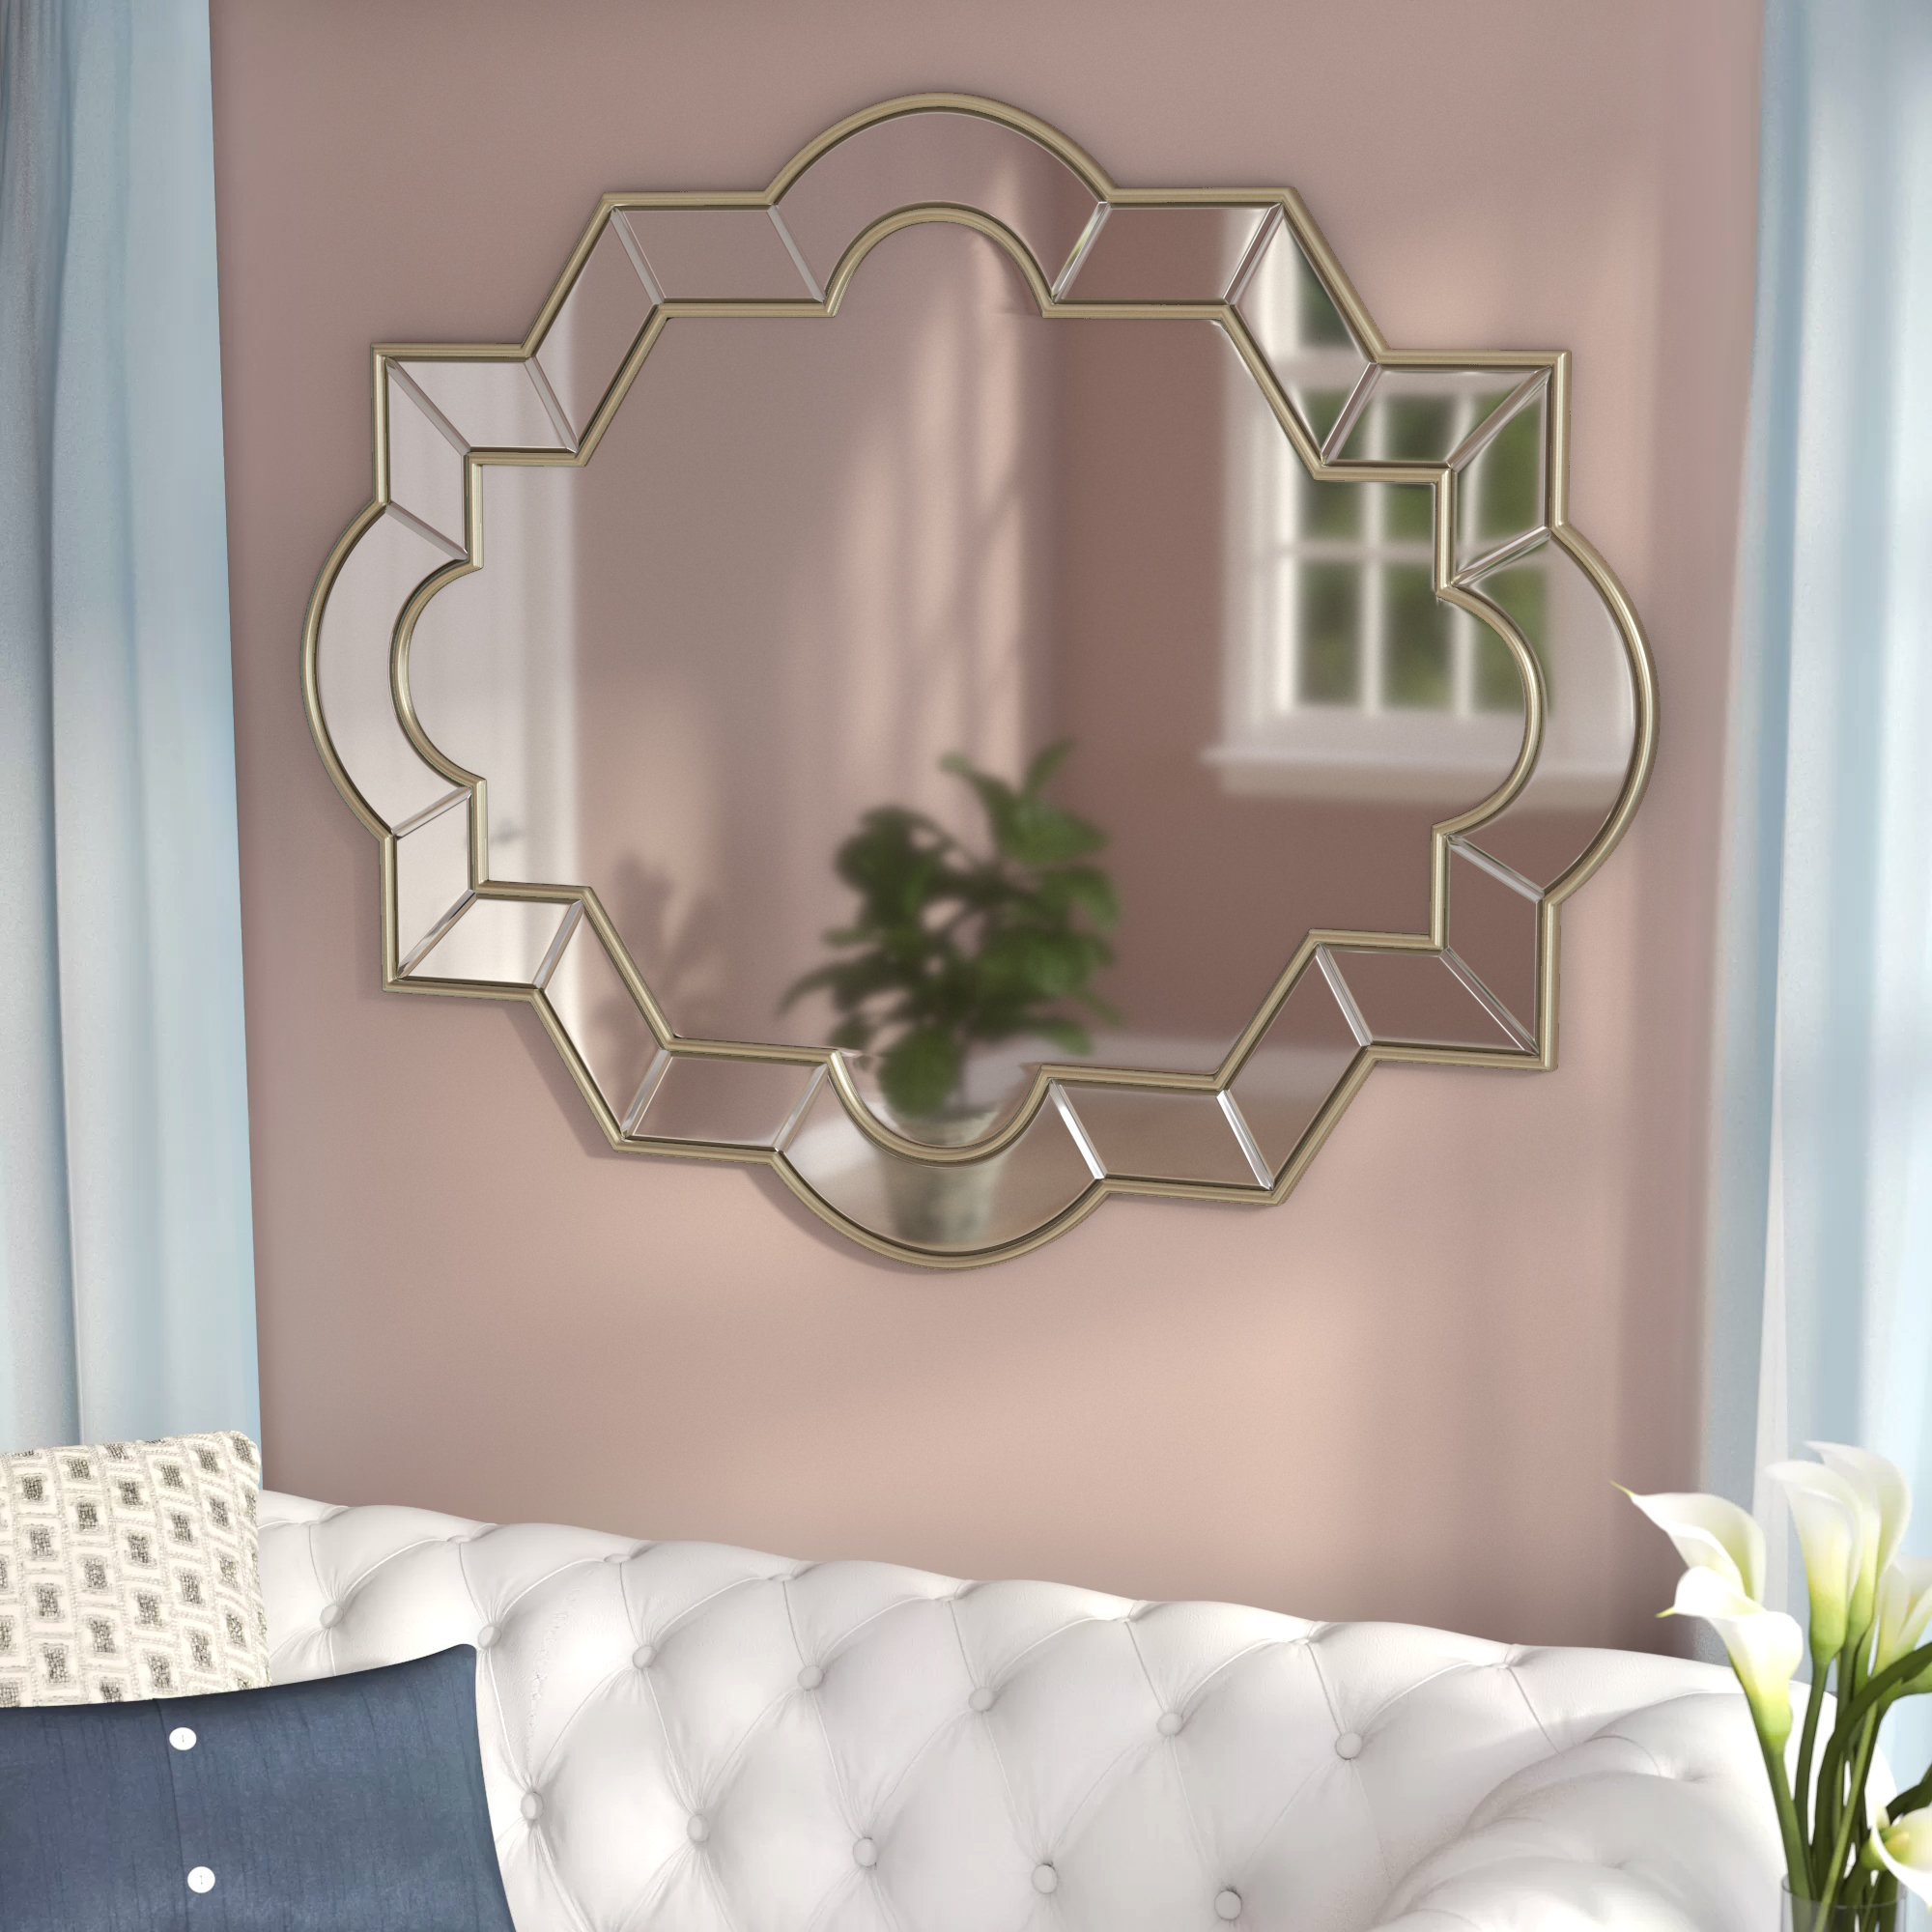 2020 Rodger Wall Mirror Pertaining To Wall Mirrors Designs (View 20 of 20)